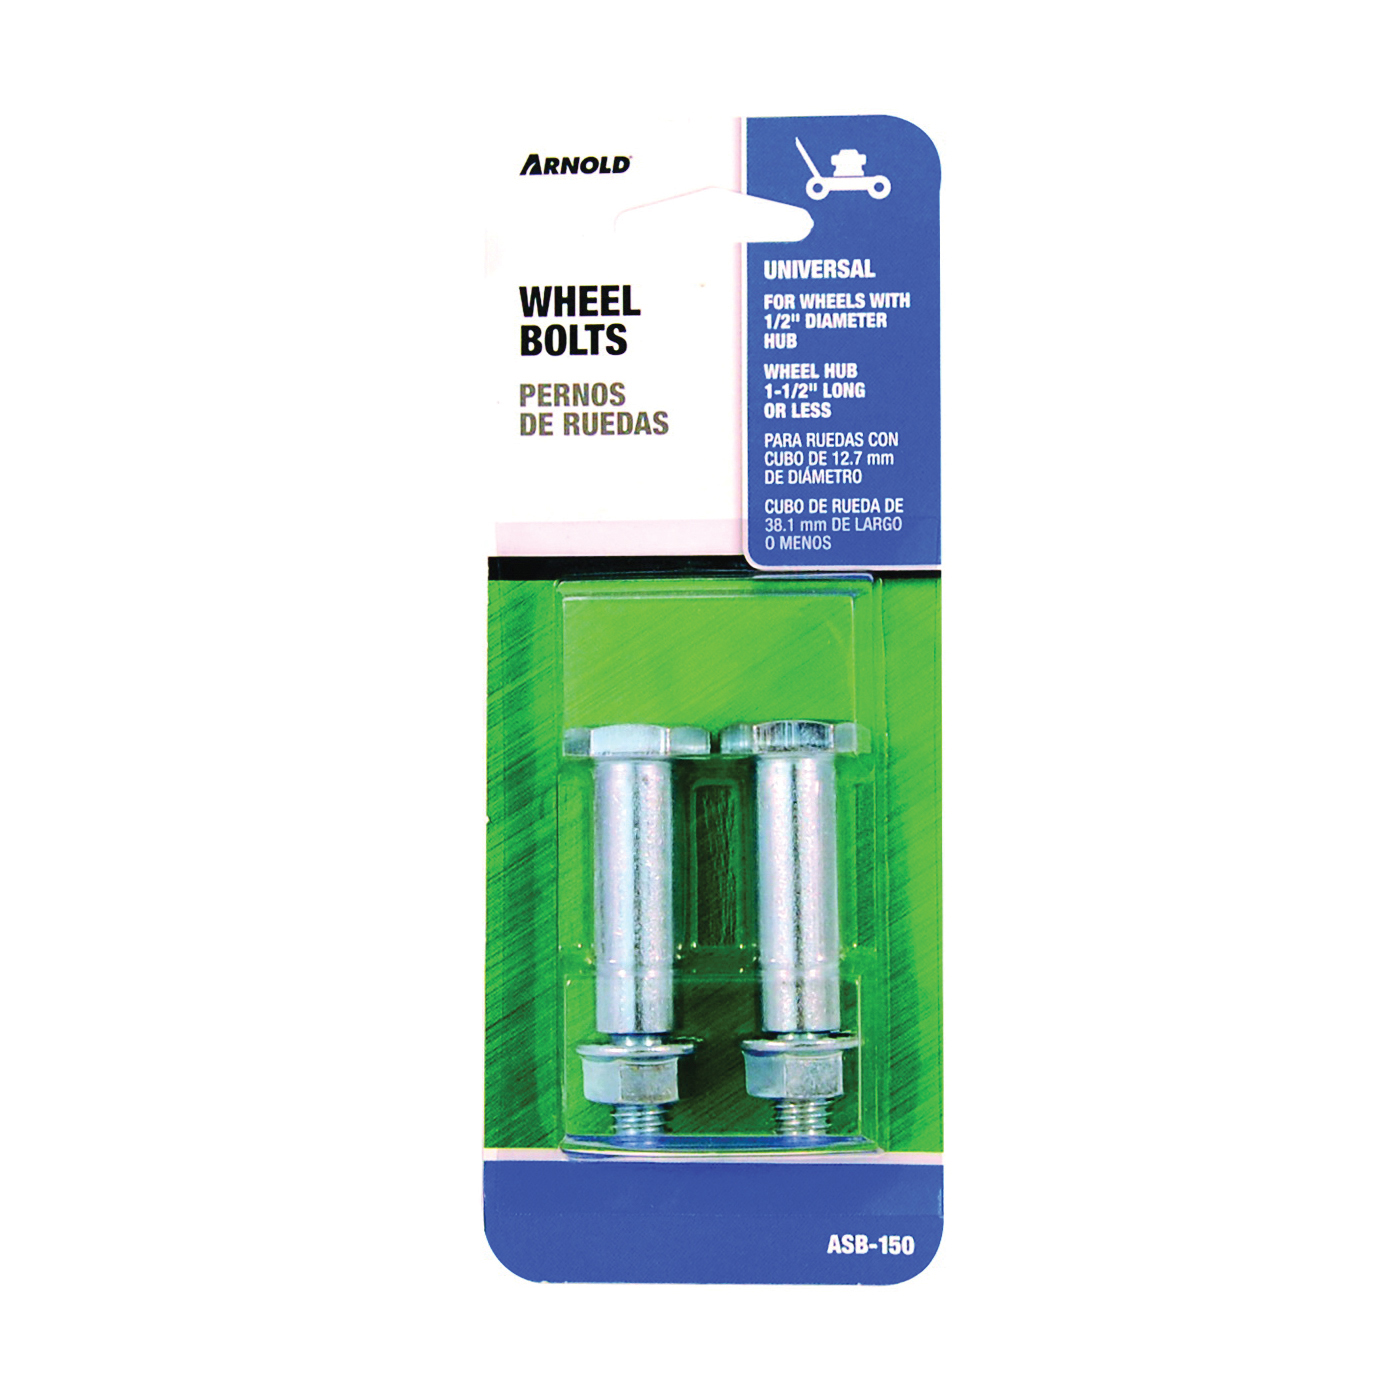 Picture of ARNOLD ASB-150 Wheel Bolt, Universal, Steel, For: Wheels with 1/2 in Dia Bore and Hub Width of 1 1/2 in or Less